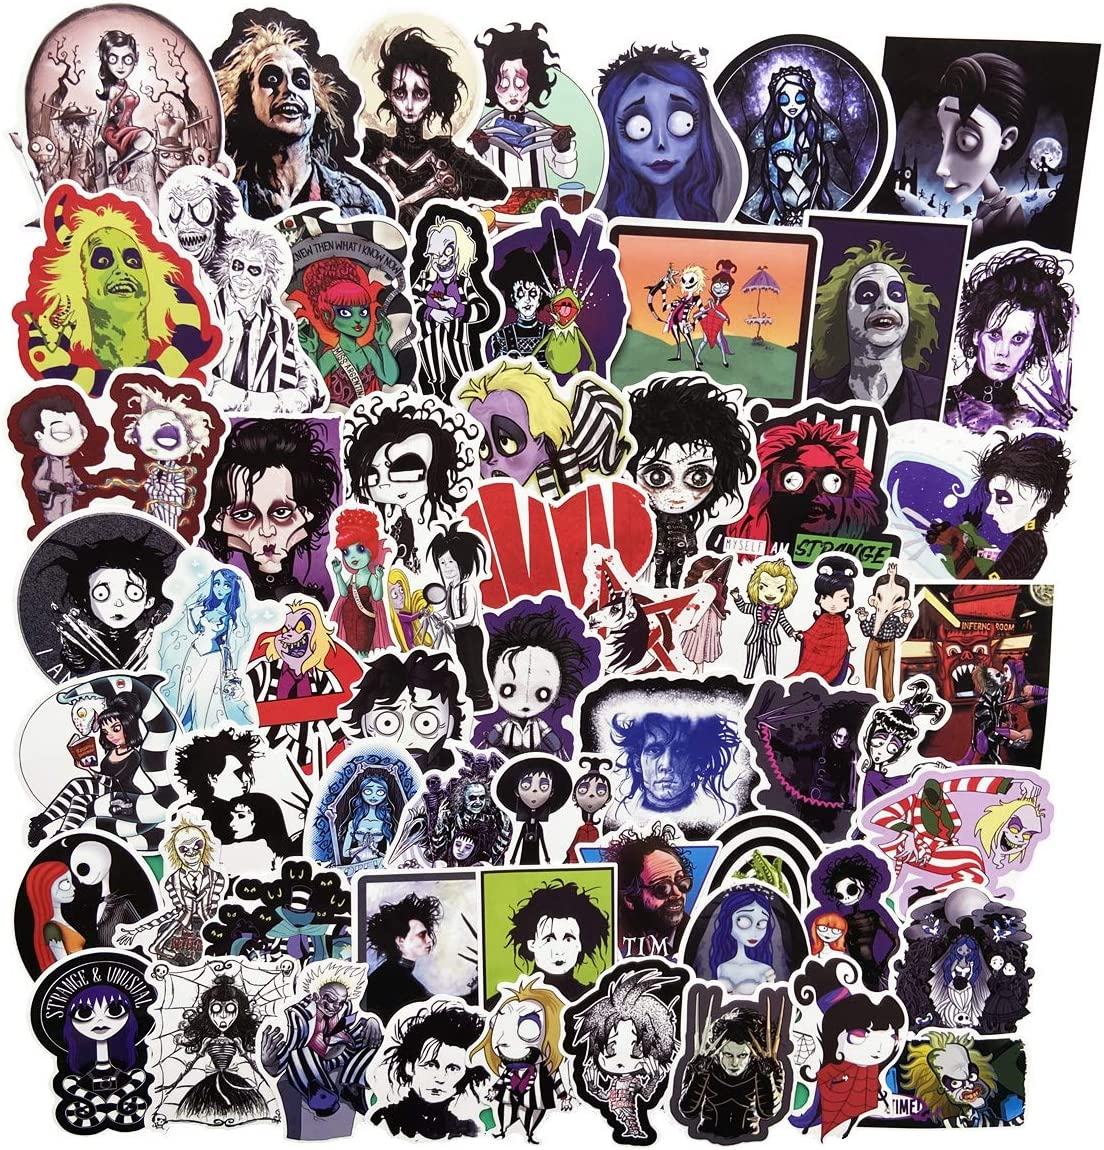 61 Pcs Tim Burton Movies Stickers for Laptop Stickers Motorcycle Bicycle Skateboard Luggage Decal Graffiti Patches (Tim Burton)